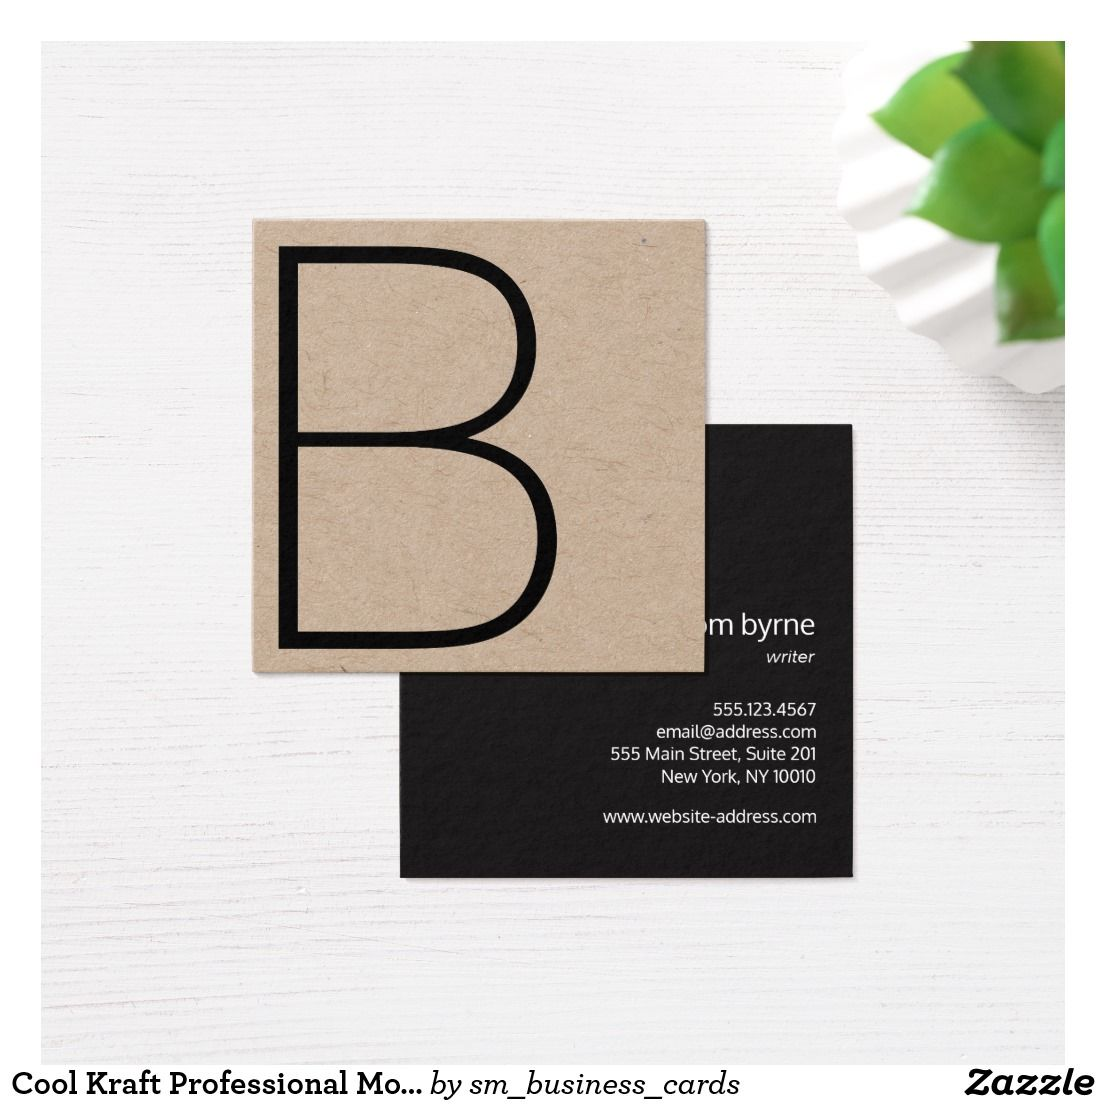 Cool Kraft Professional Monogram Square Square Business Card | Chic ...